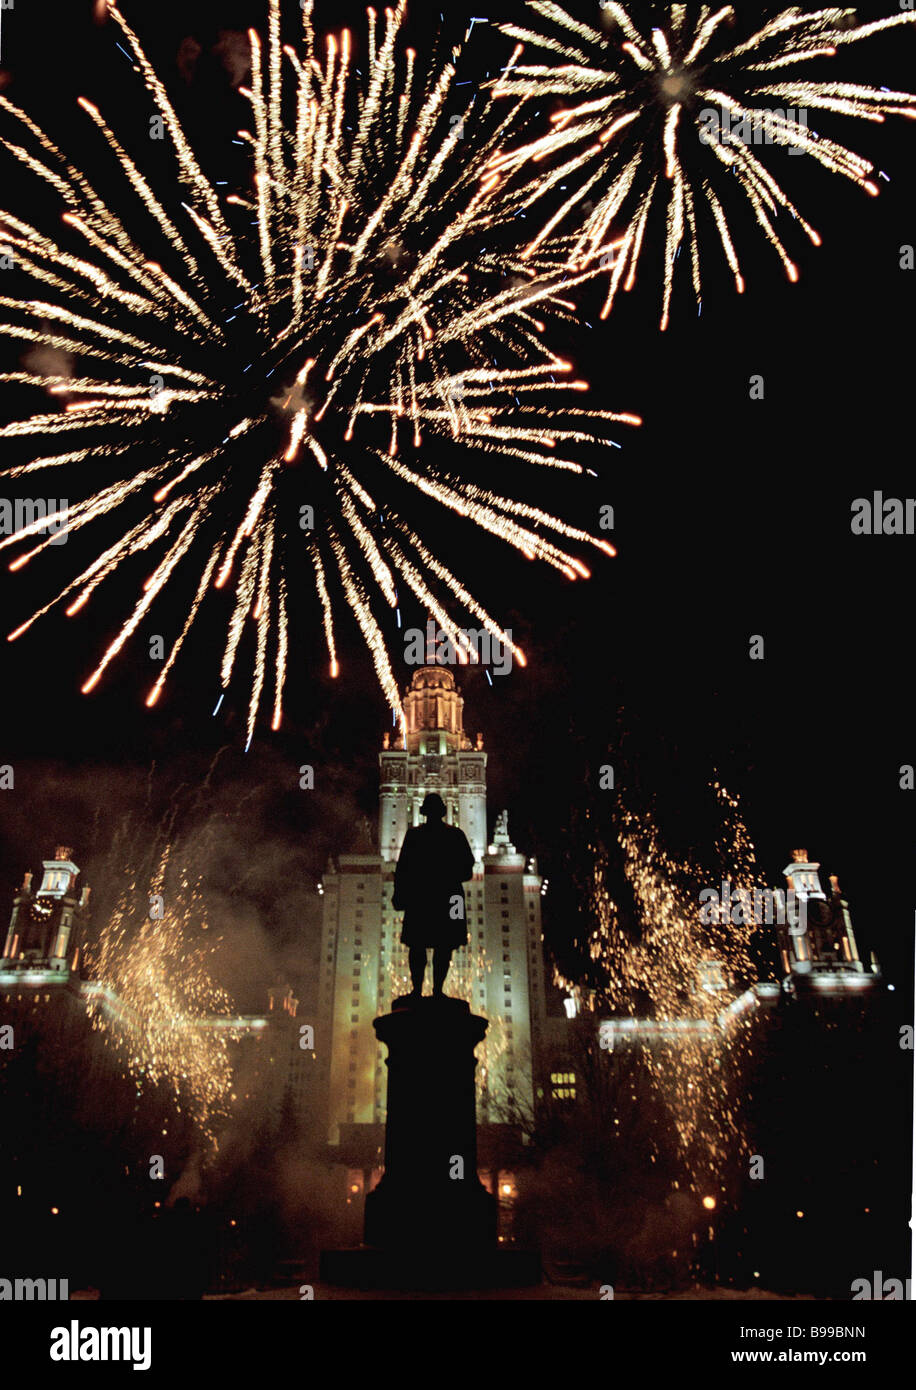 Fireworks during the celebration of the 250th anniversary of Moscow State University - Stock Image